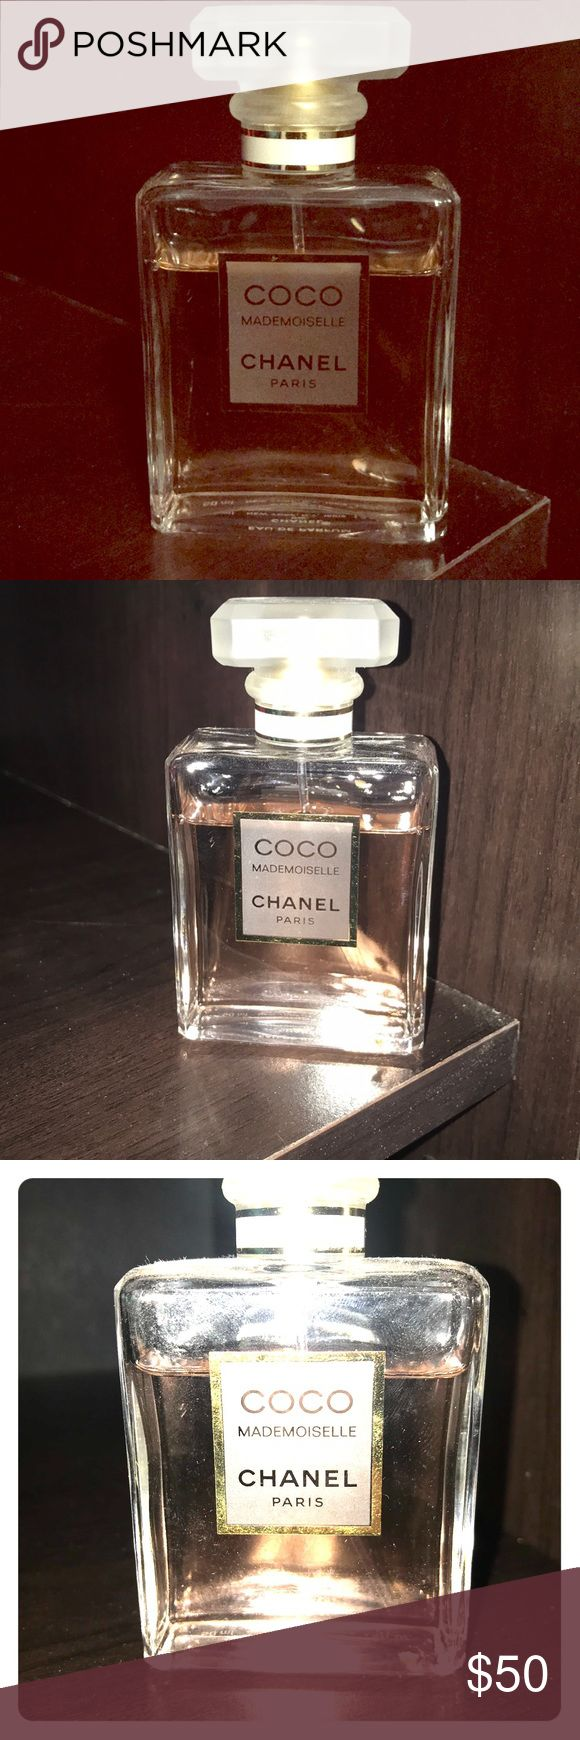 COCO Mademoiselle CHANEL Paris More than 80% of a 1.7 FL. OZ bottle!!! The only issue is the lid doesn't snap on the bottle very good. It does its job in covering the spray cap, but it just doesn't stay on very well...(for traveling, etc..)other than that, no issues. CHANEL Other